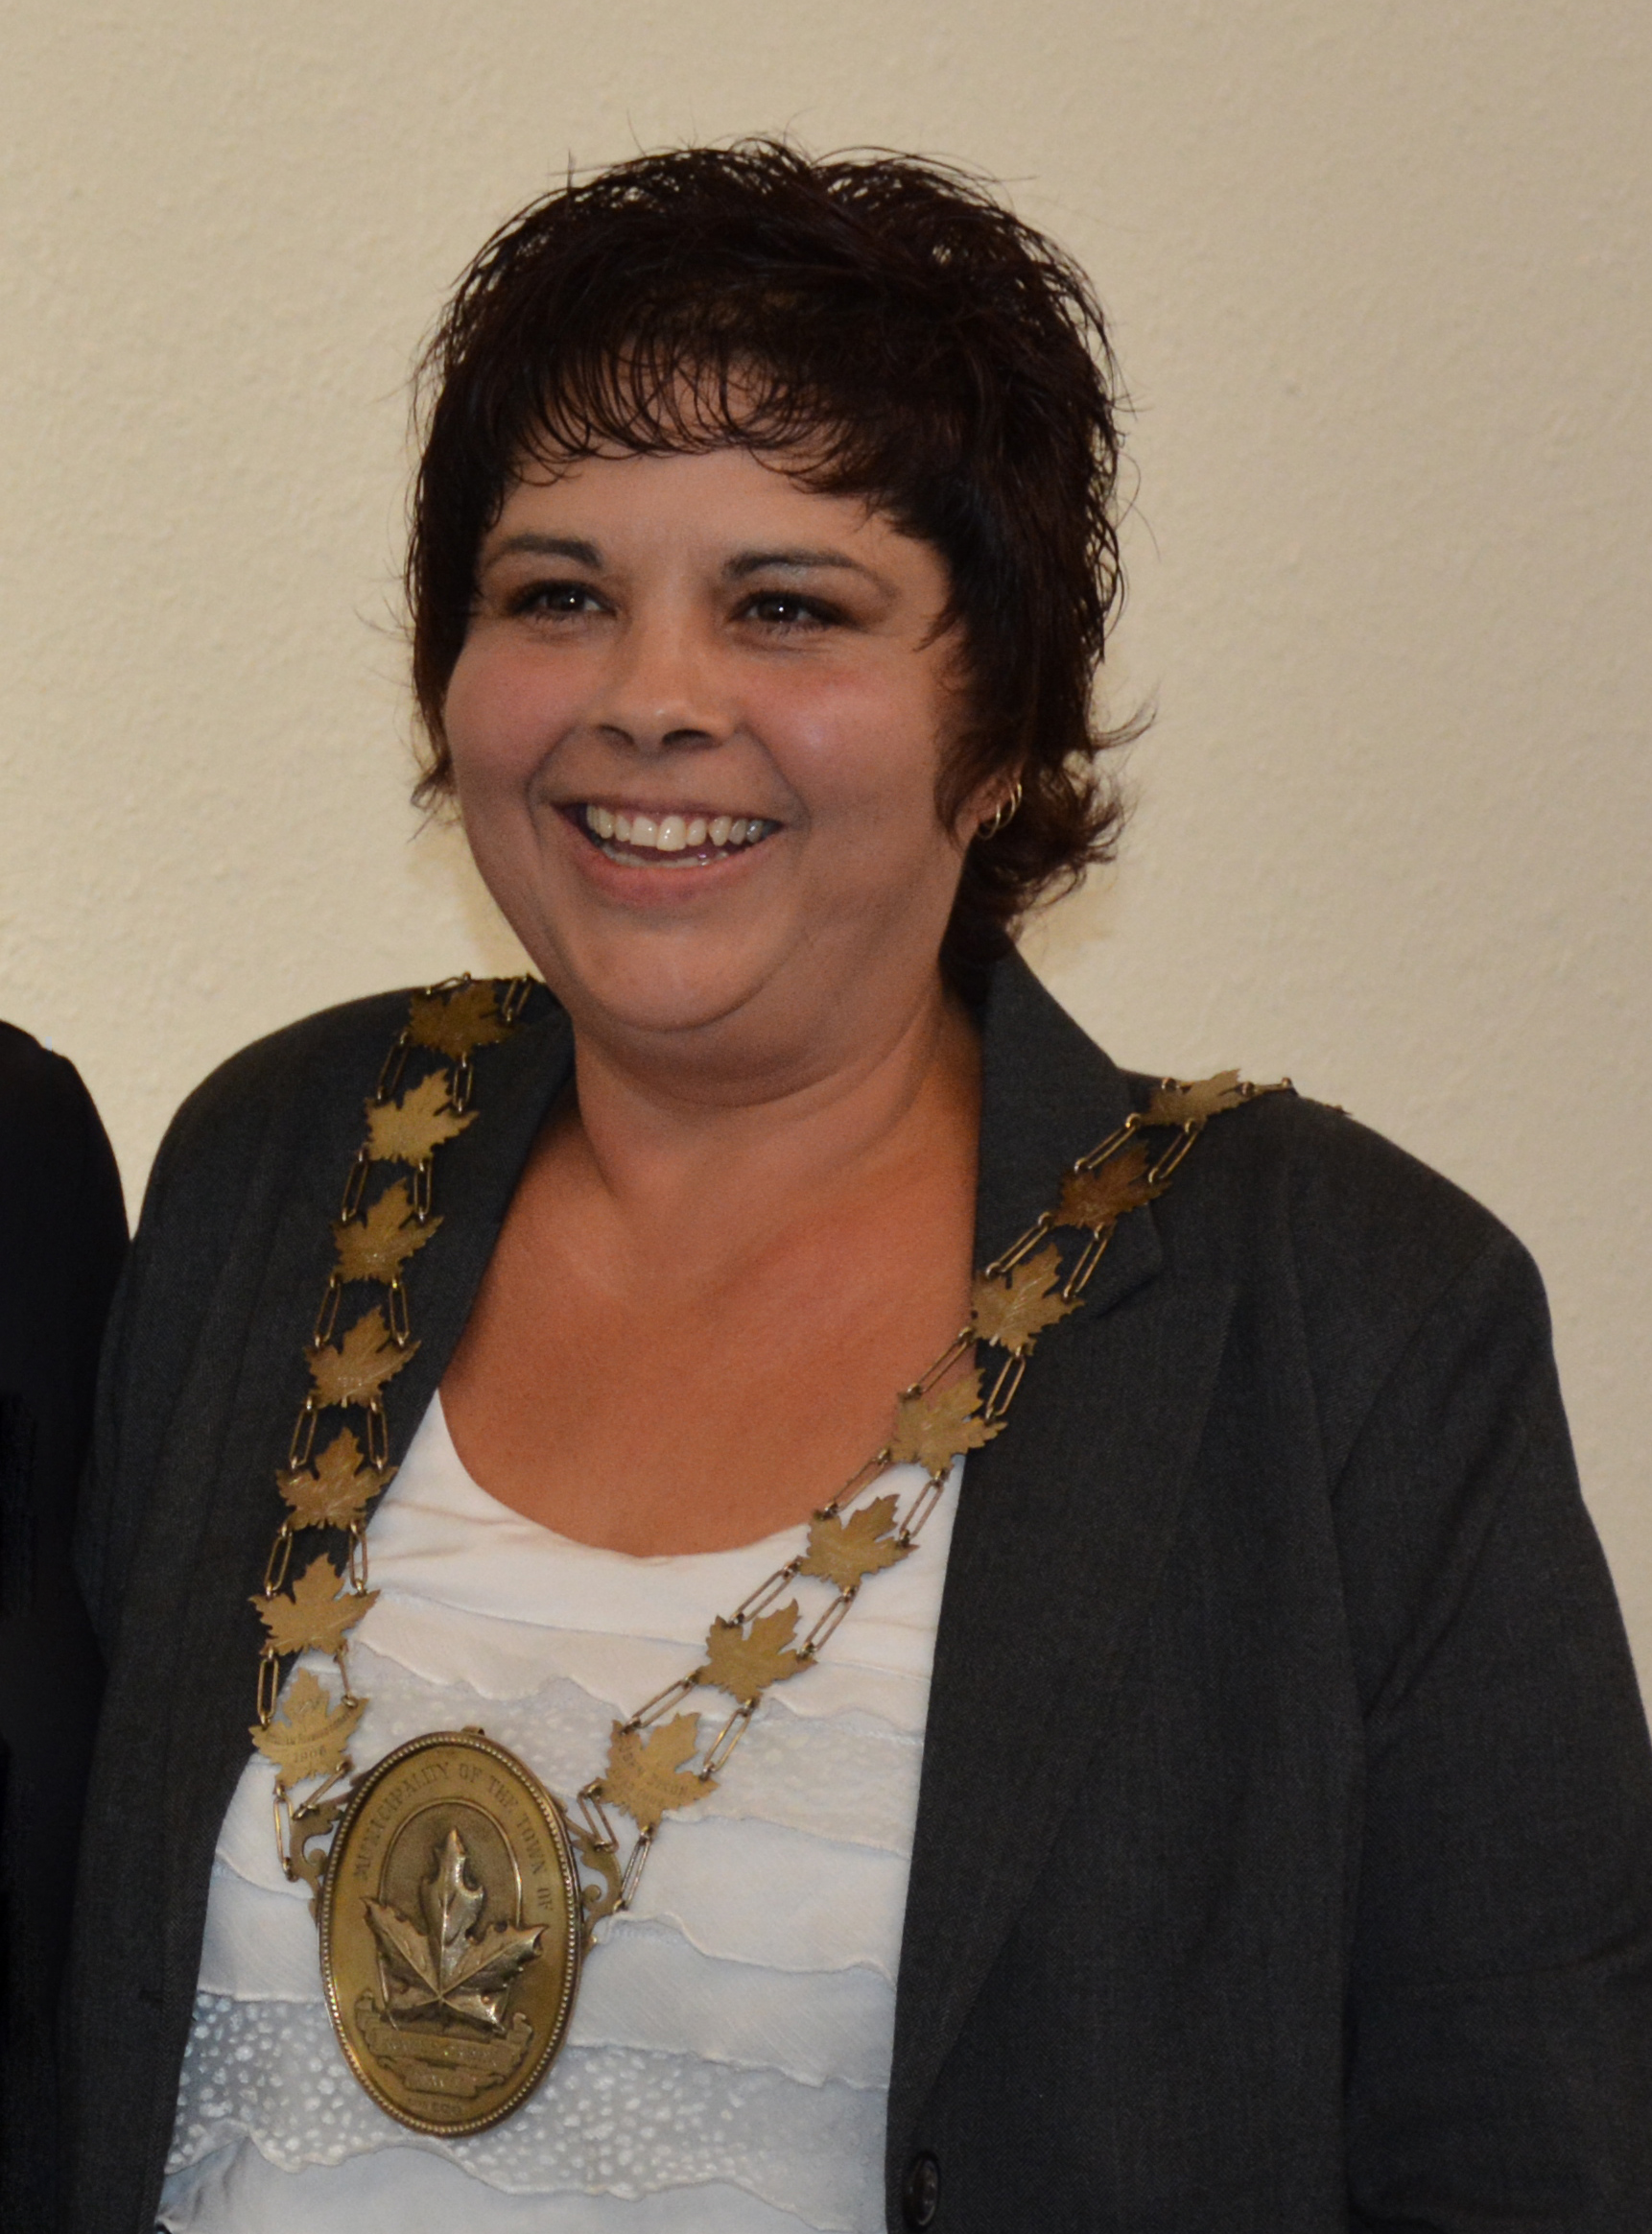 Mayor Michelle McKenzie